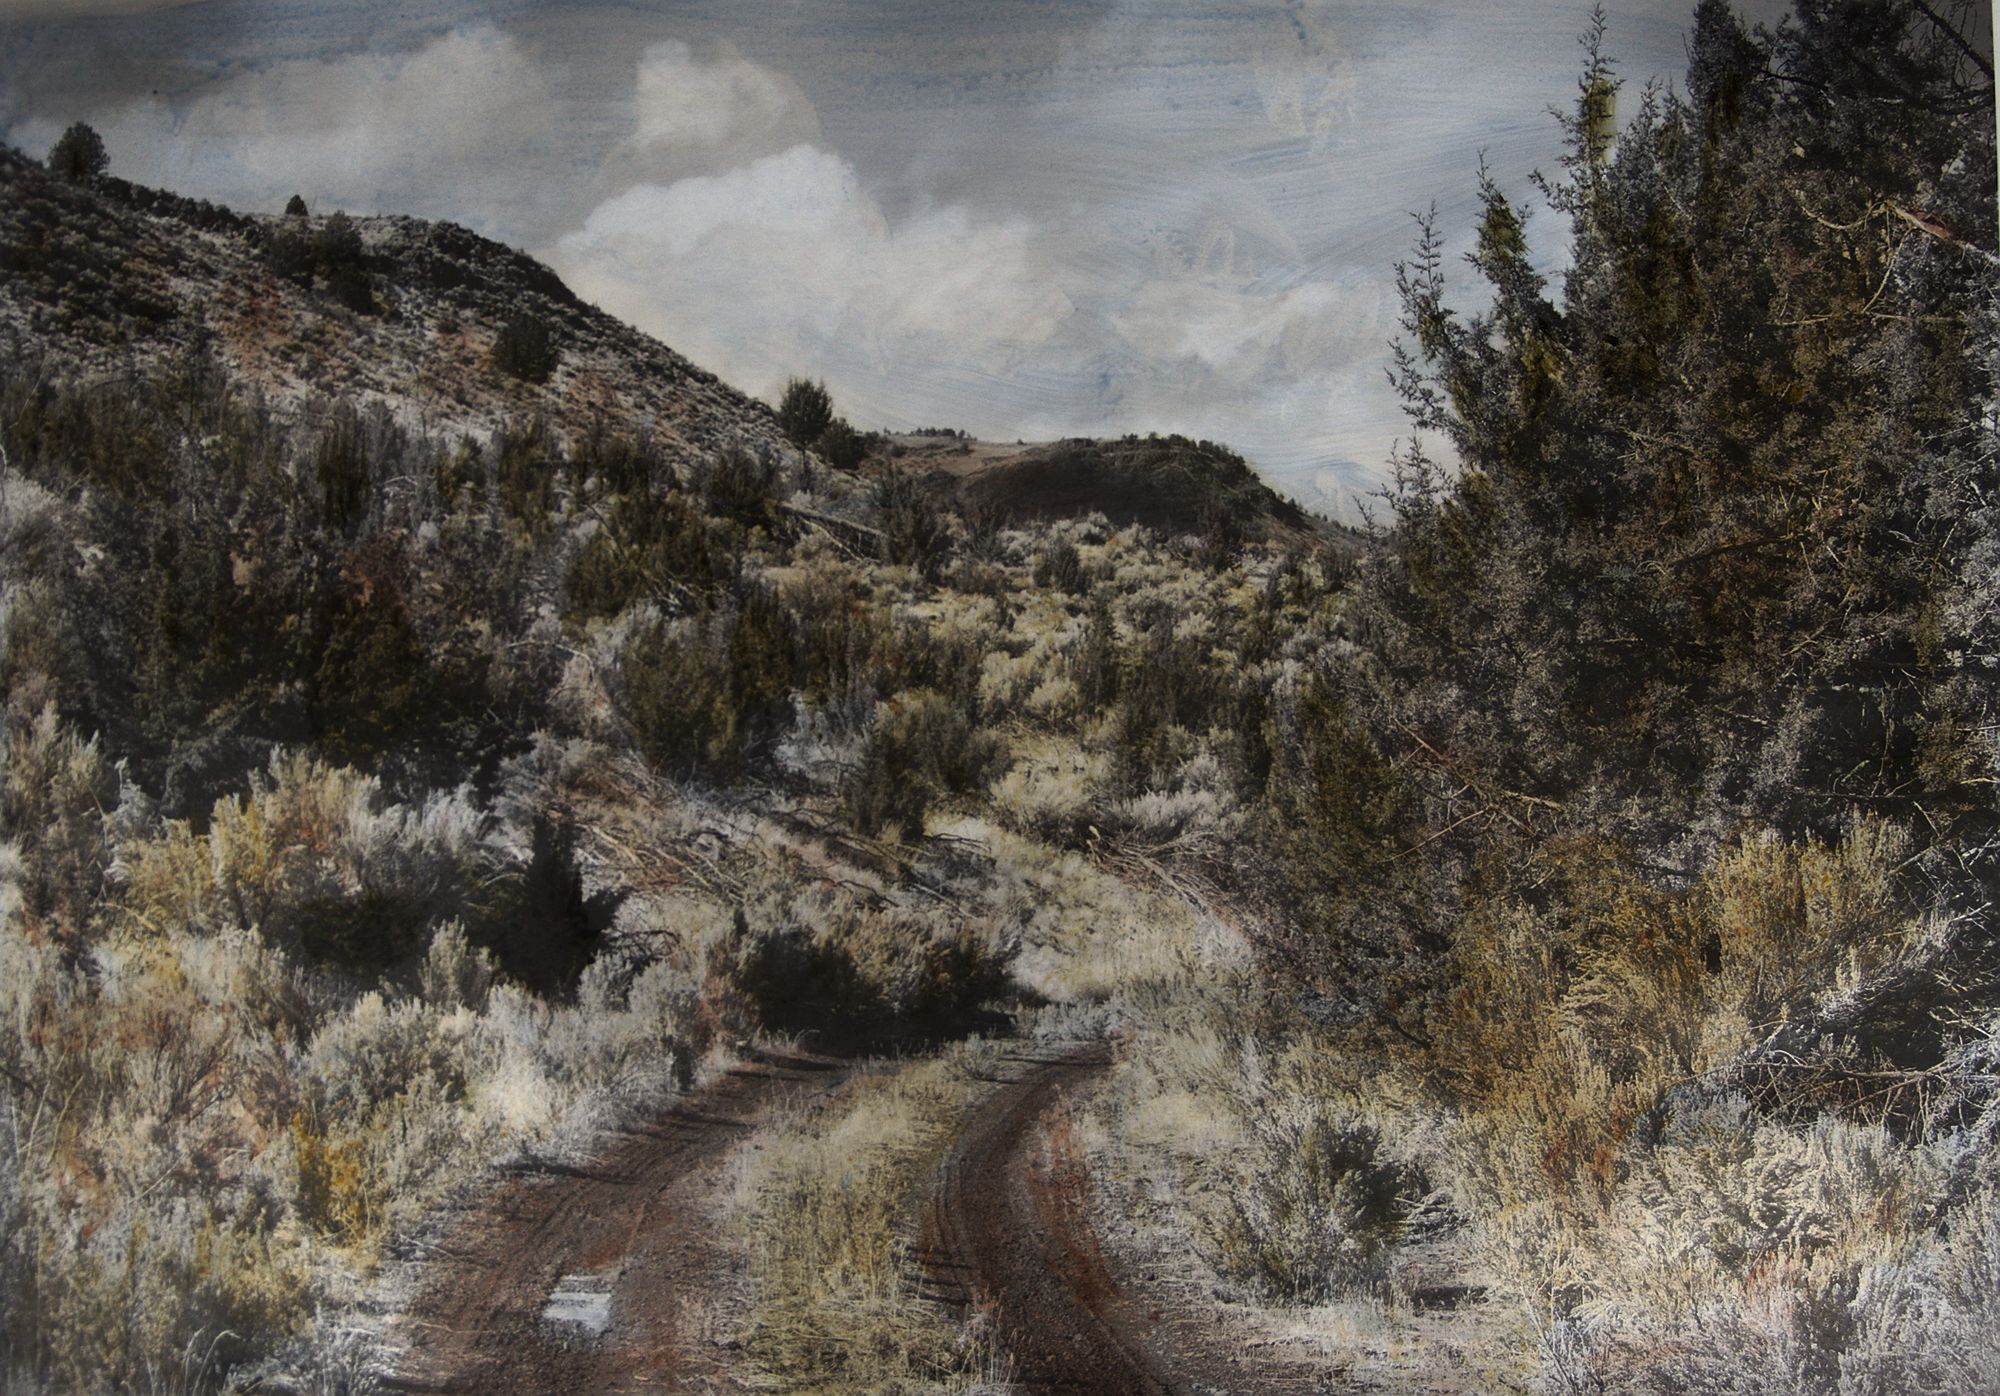 Road Near Frenchglen 2016.1 -- 22x30 inch hand colored photo